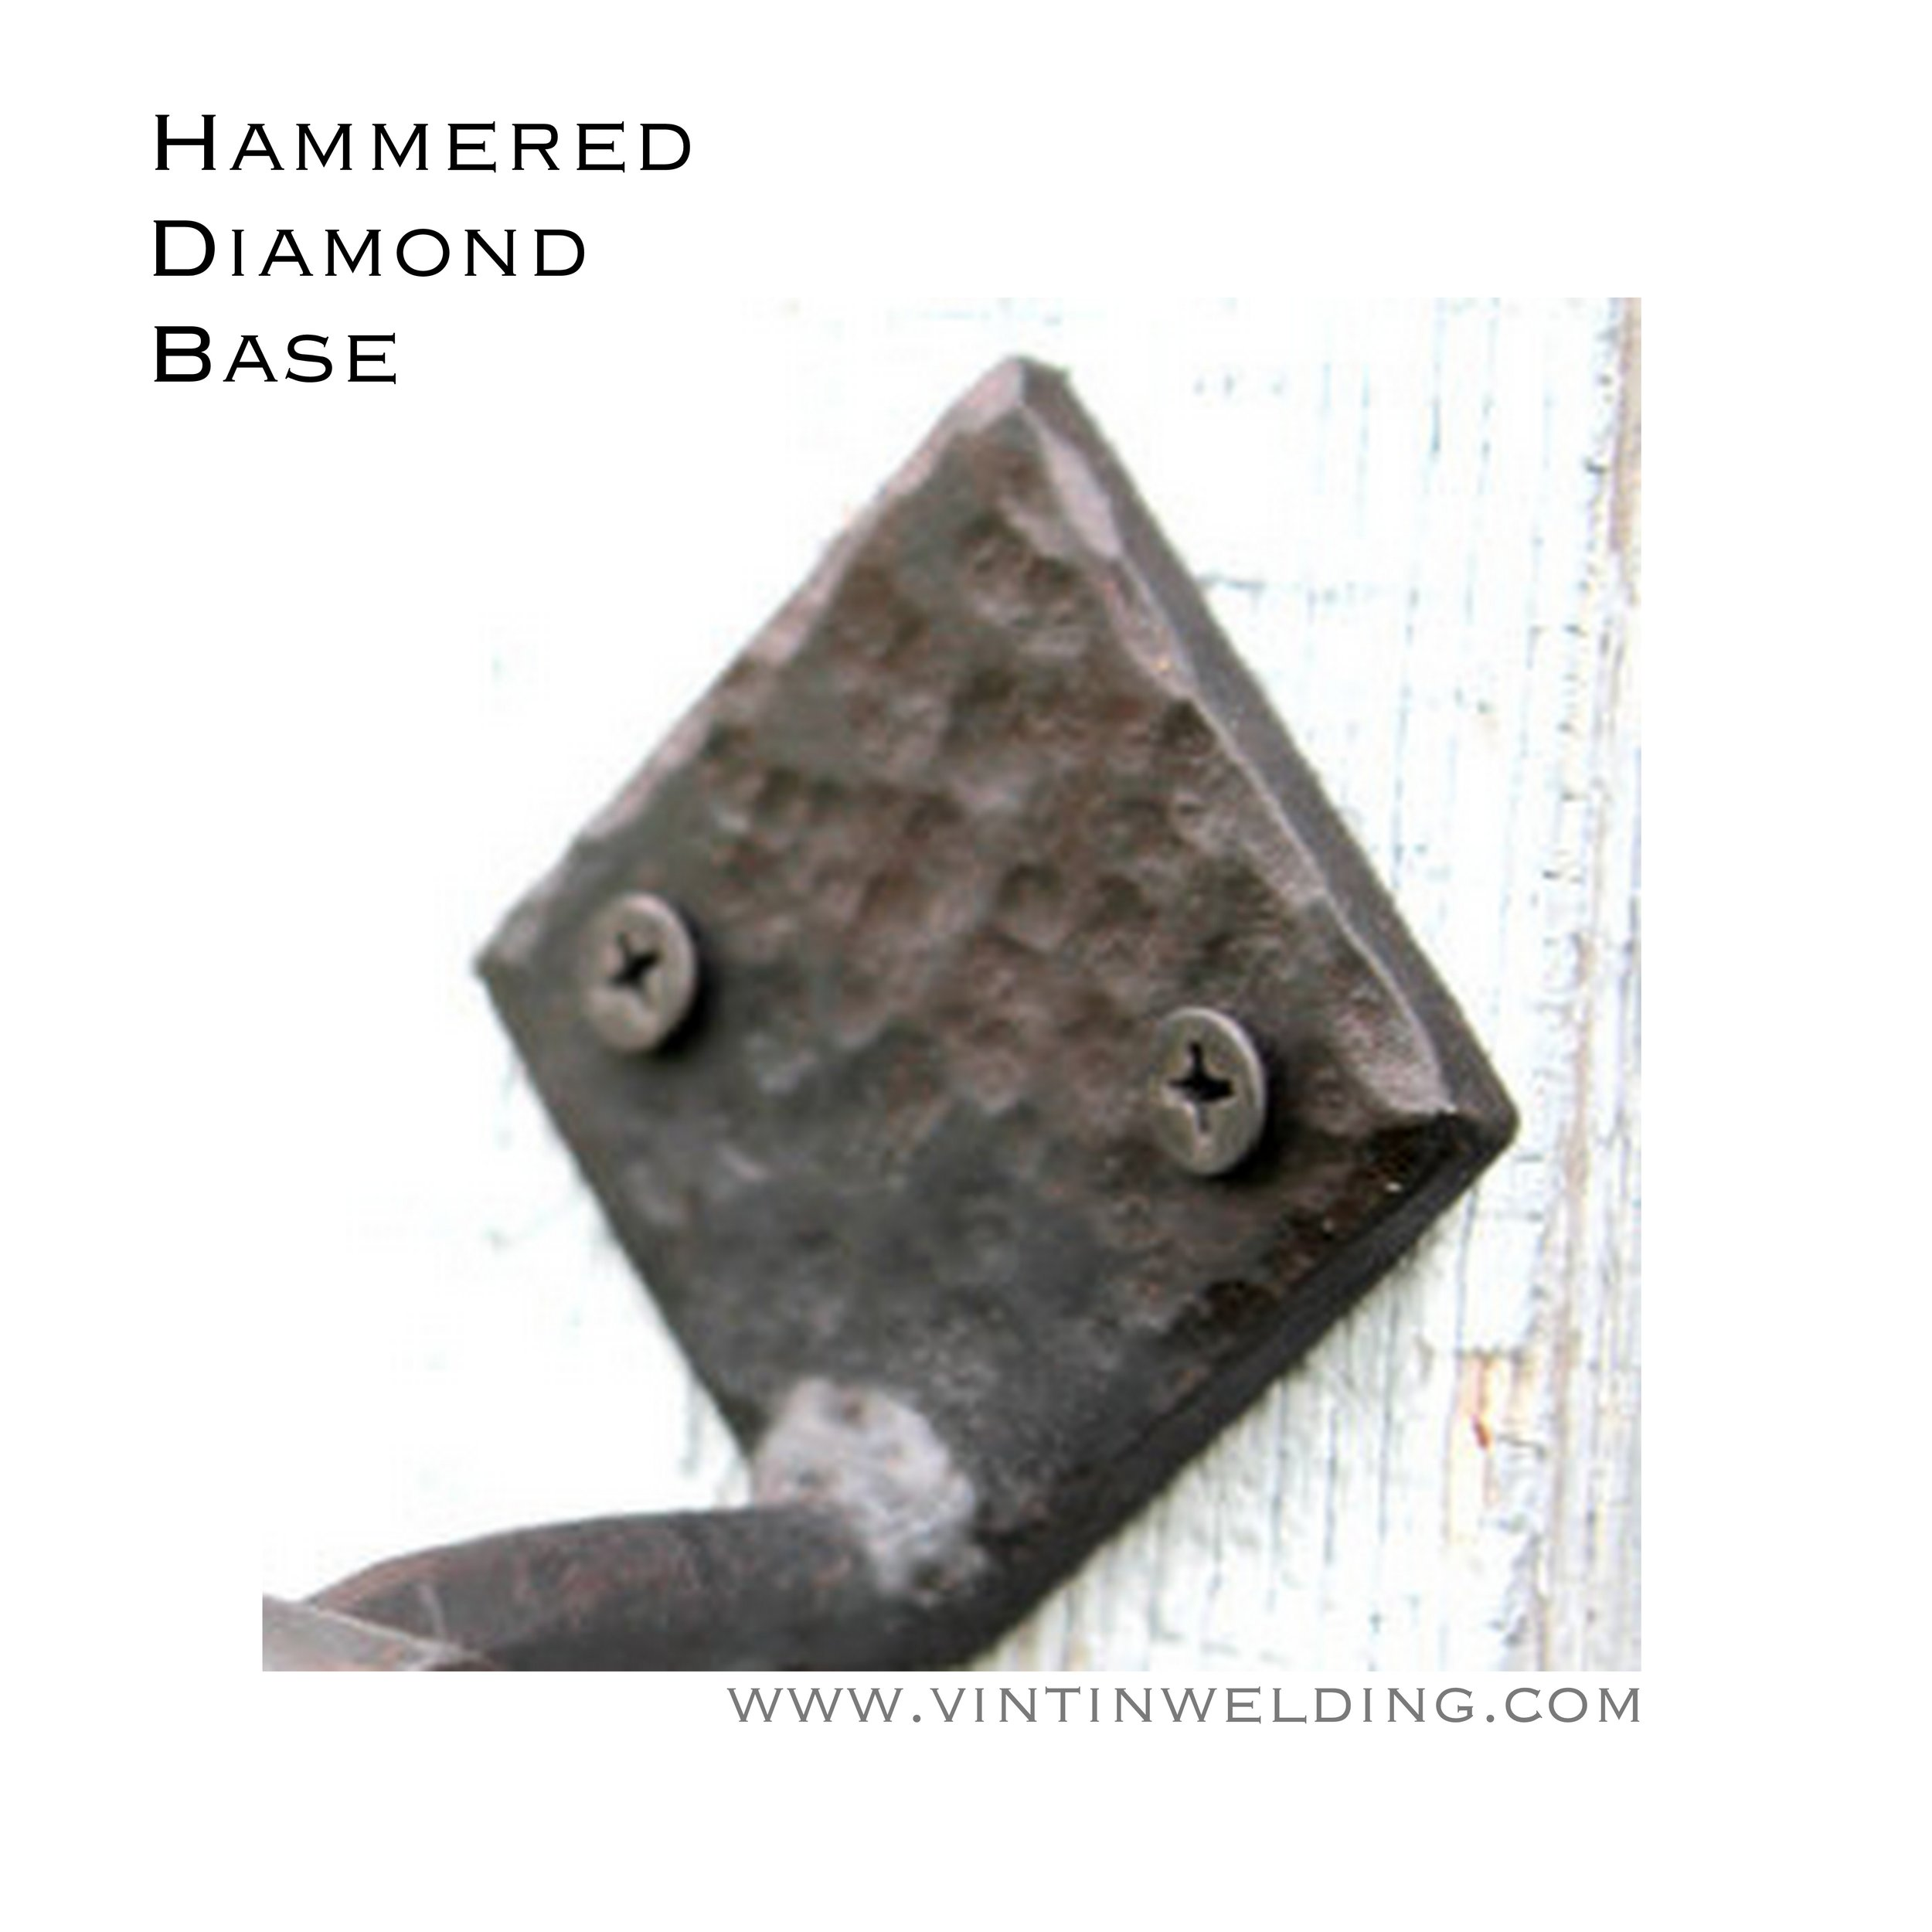 hammered diamond base.jpg